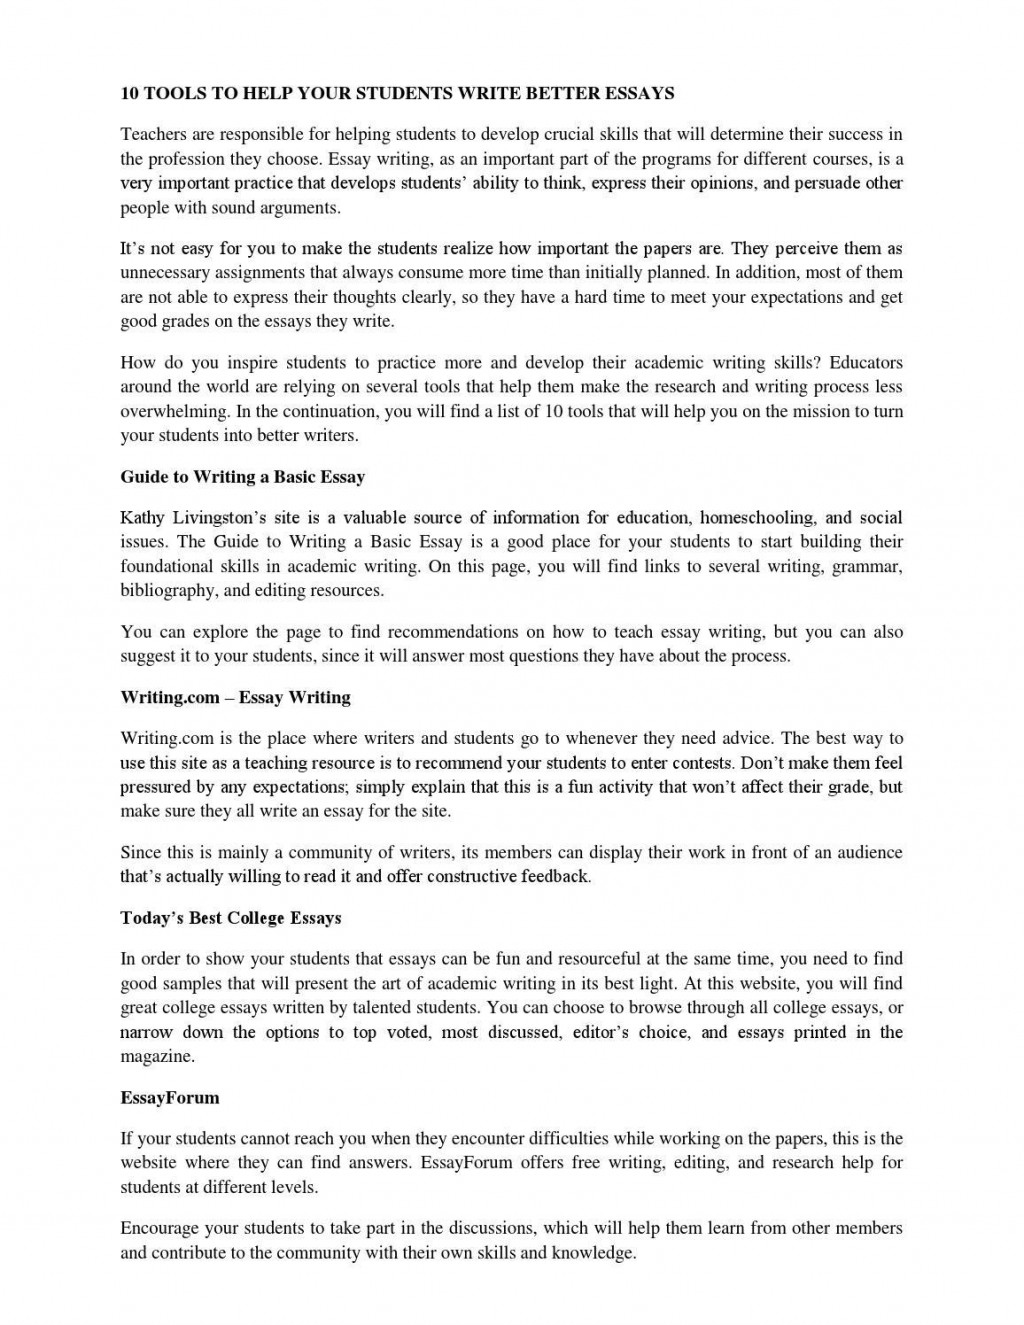 002 Research Paper Websites Essay Writing Reviews For Students Editing Free Page Example Formidable Download Sites Best Large